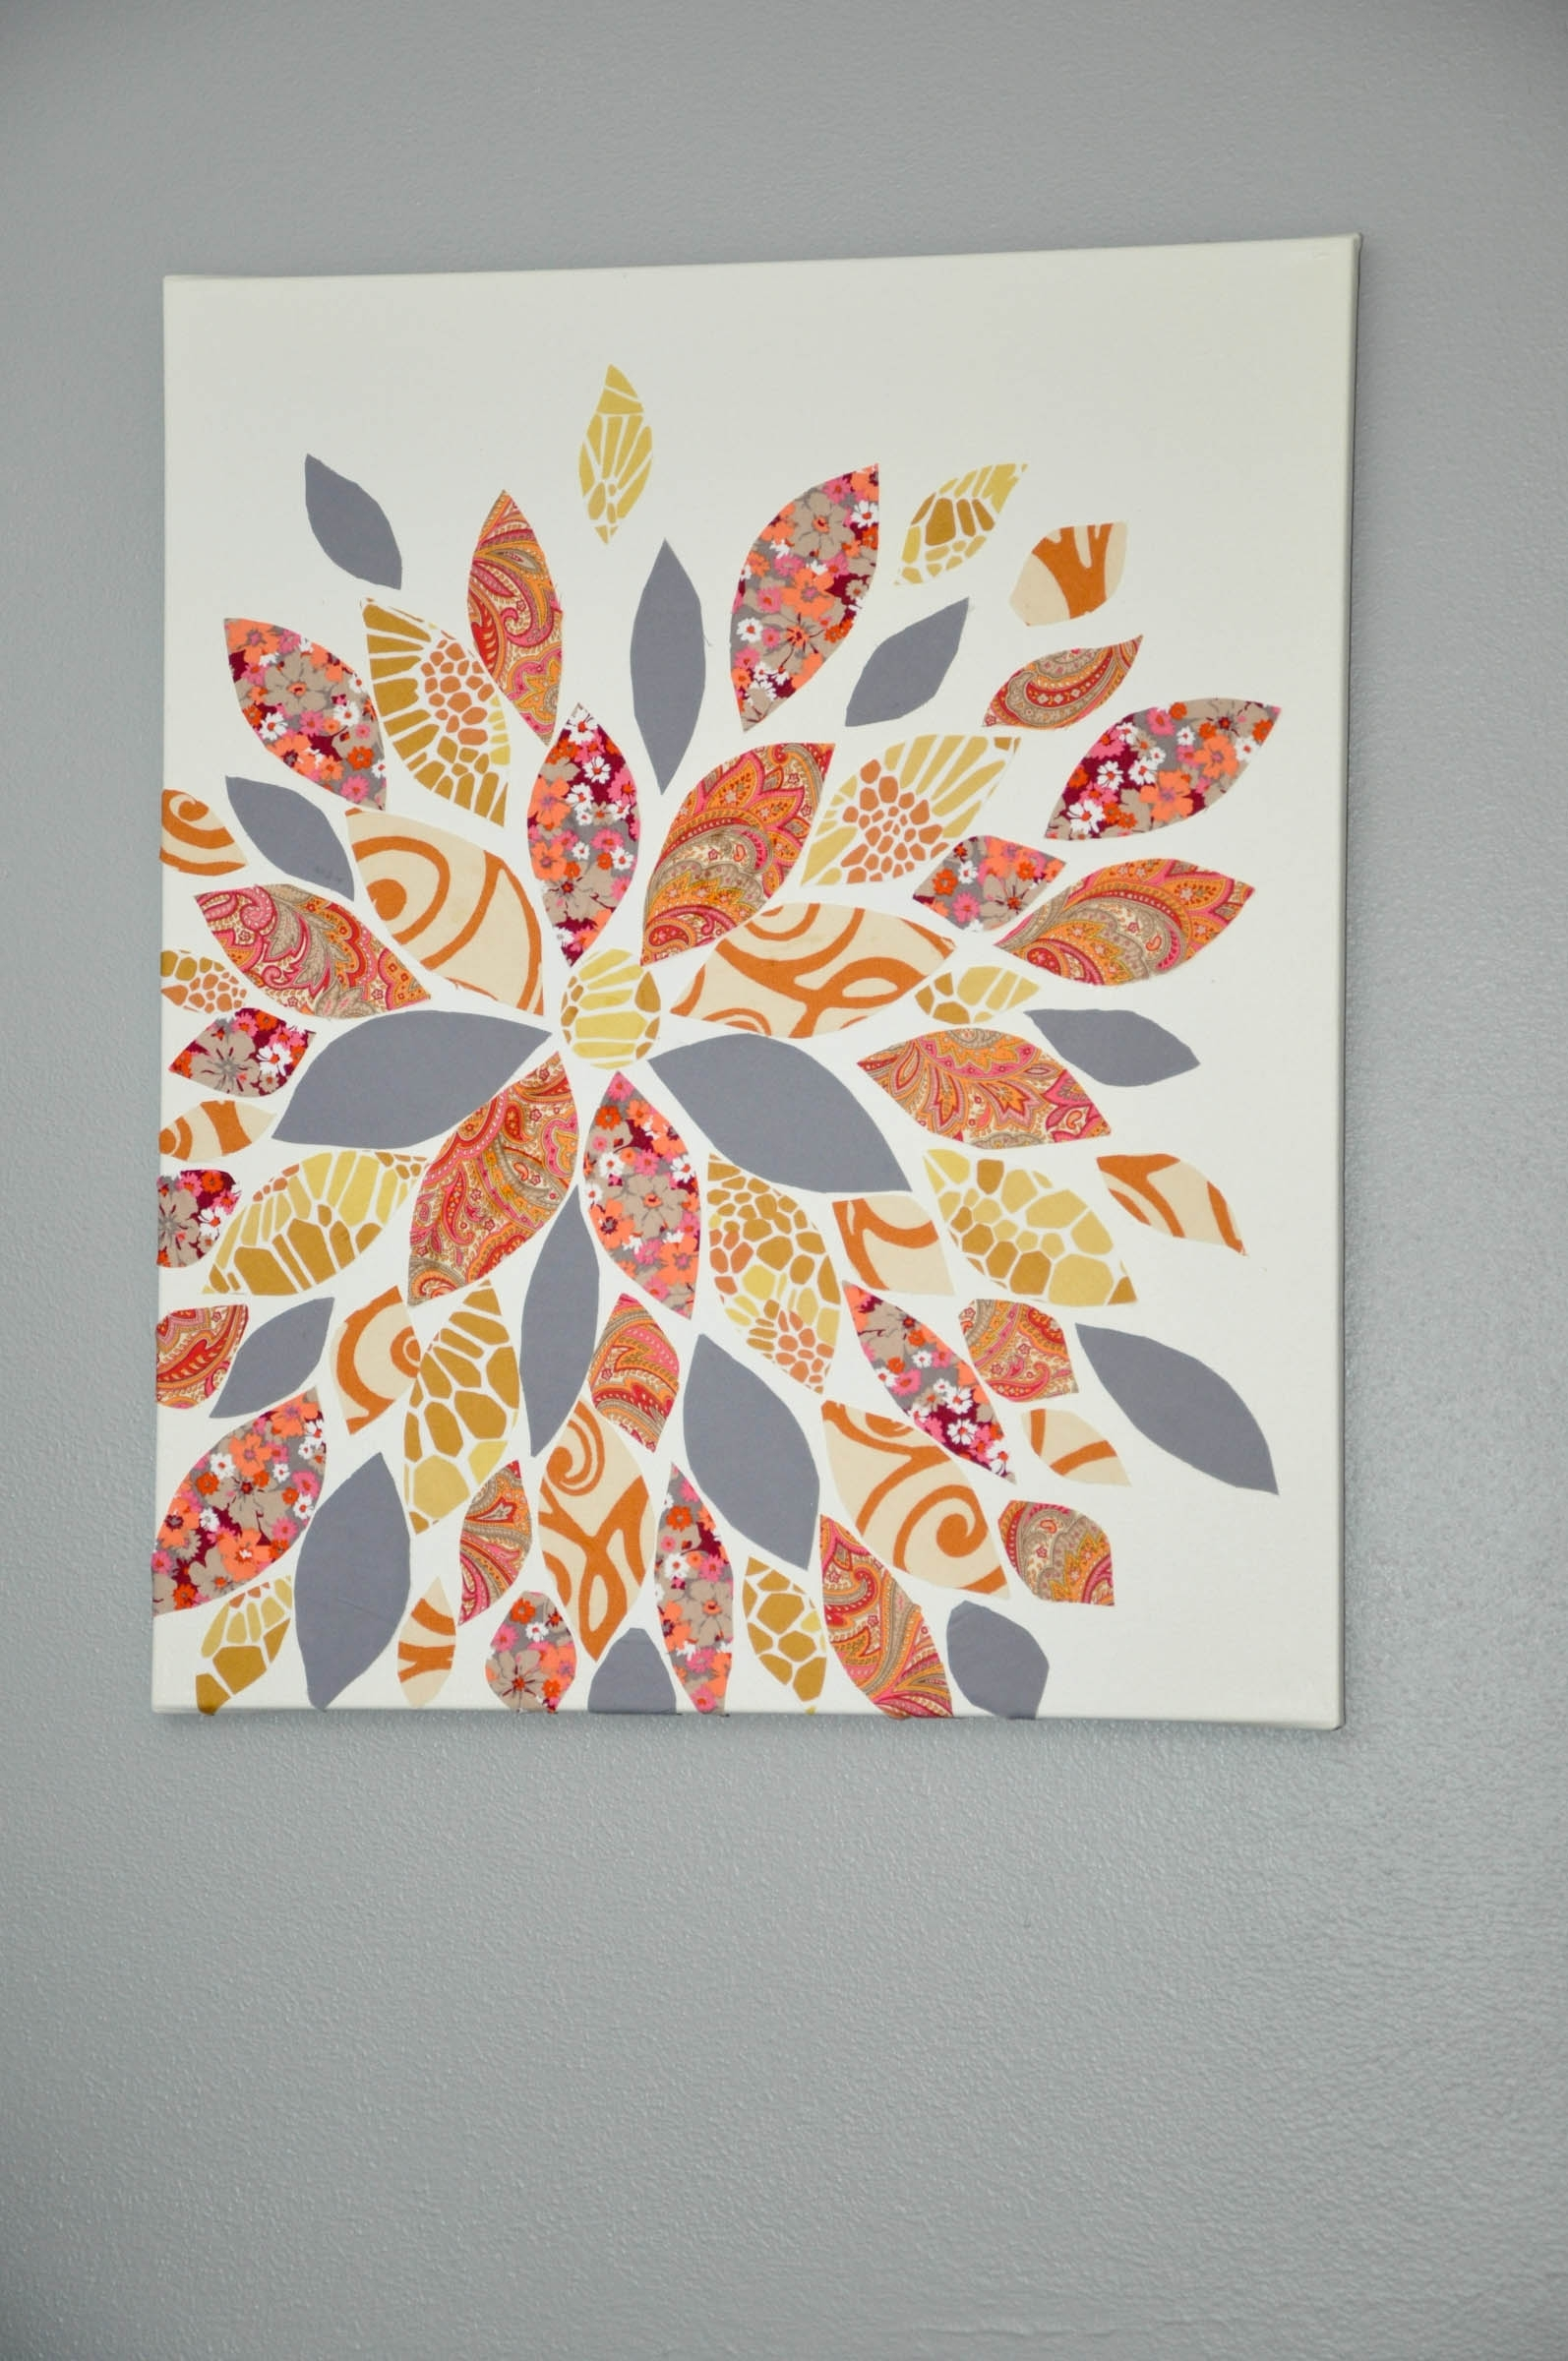 This Is So Cute And So Easy! Gosh I Can't Wait To Own My Own Within Most Current Fabric Flower Wall Art (View 7 of 15)